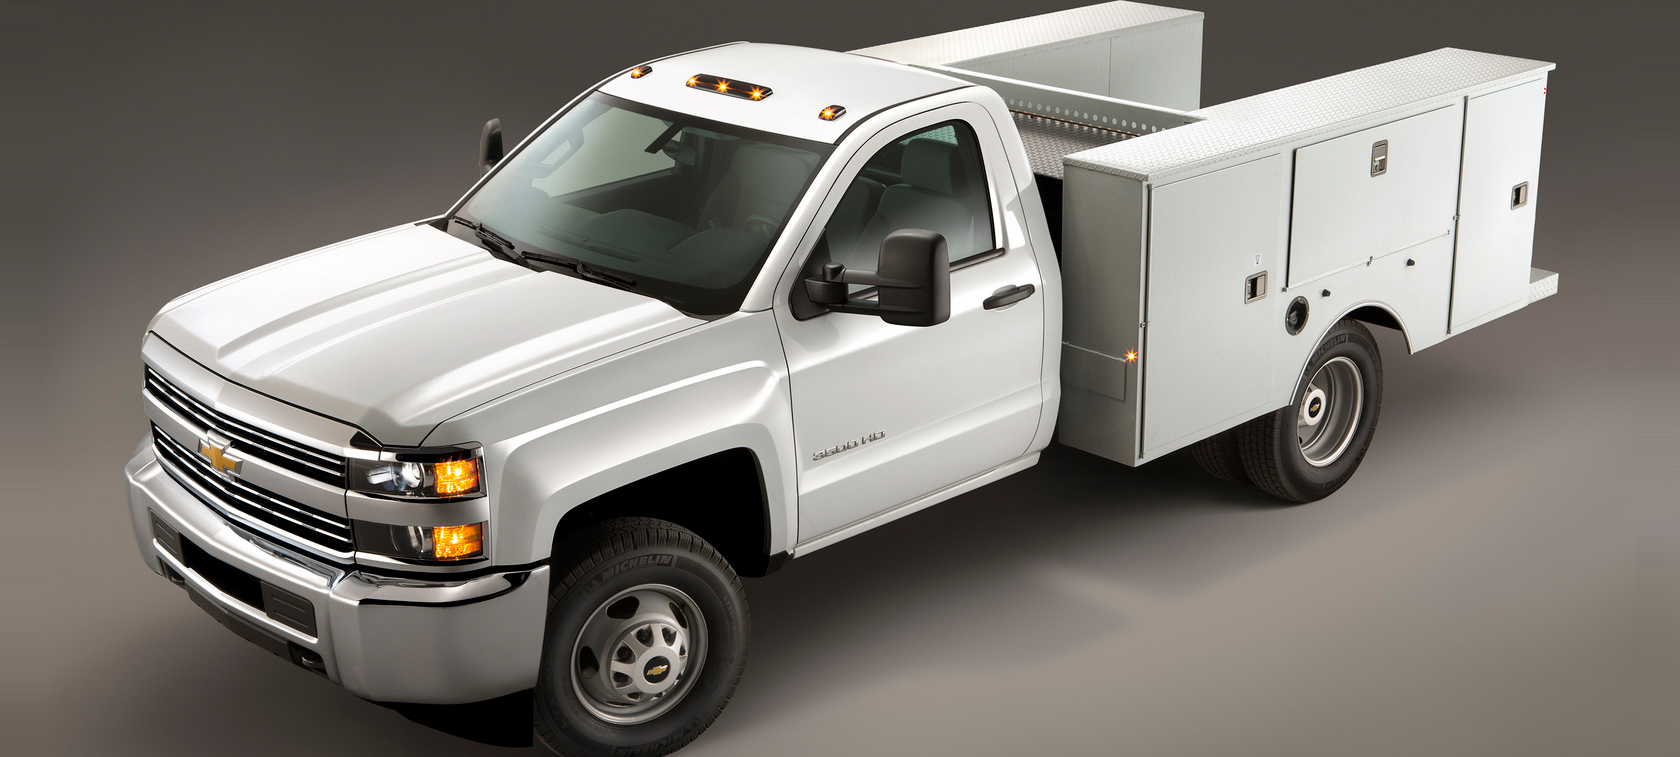 Silverado 3500HD CNG - Chevy under pressure